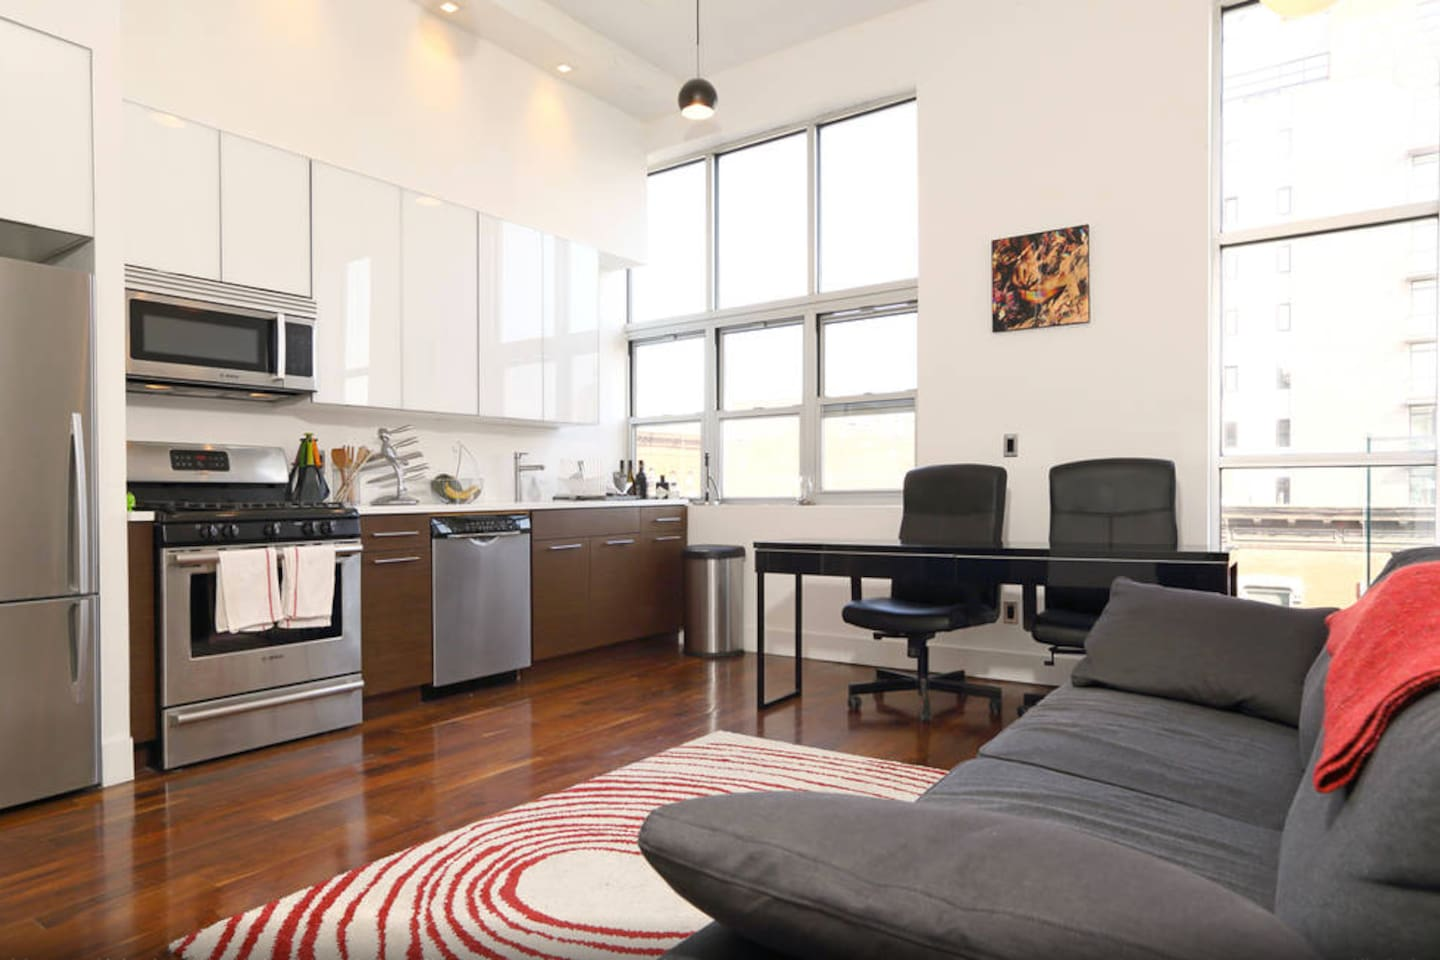 Beautiful 4 bedroom loft with 12 foot ceilings and modern renovations